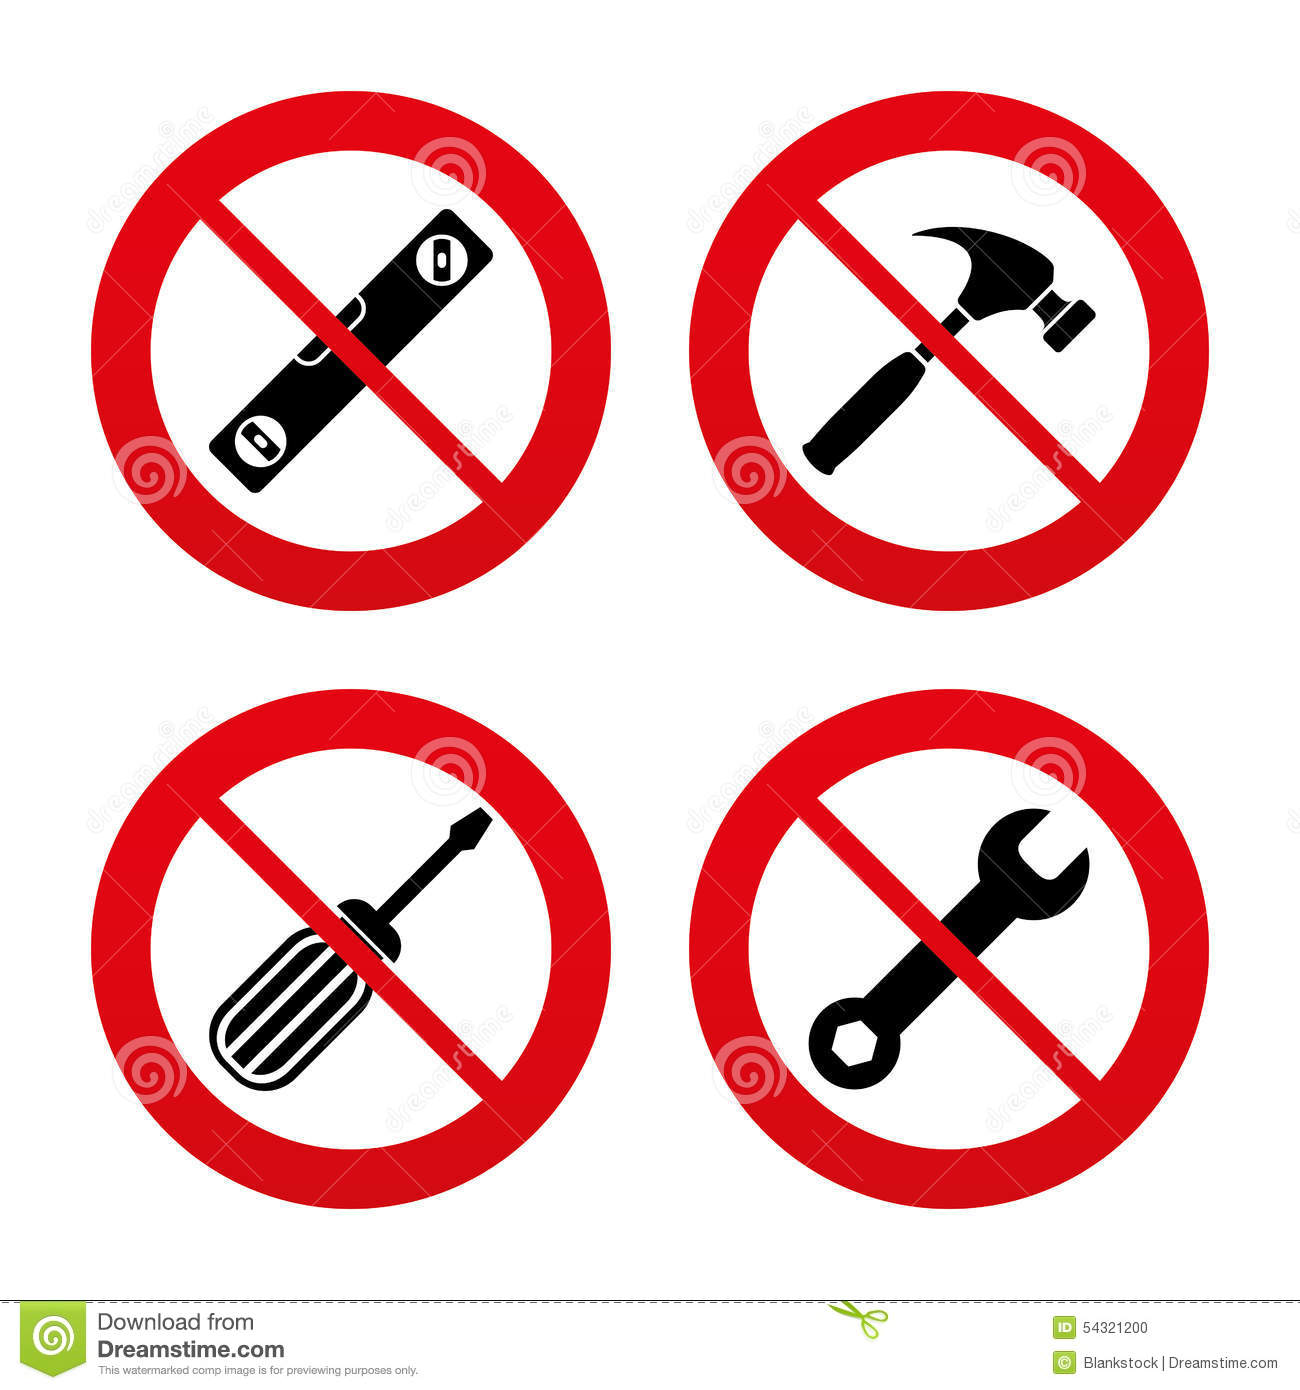 No hammer what to use